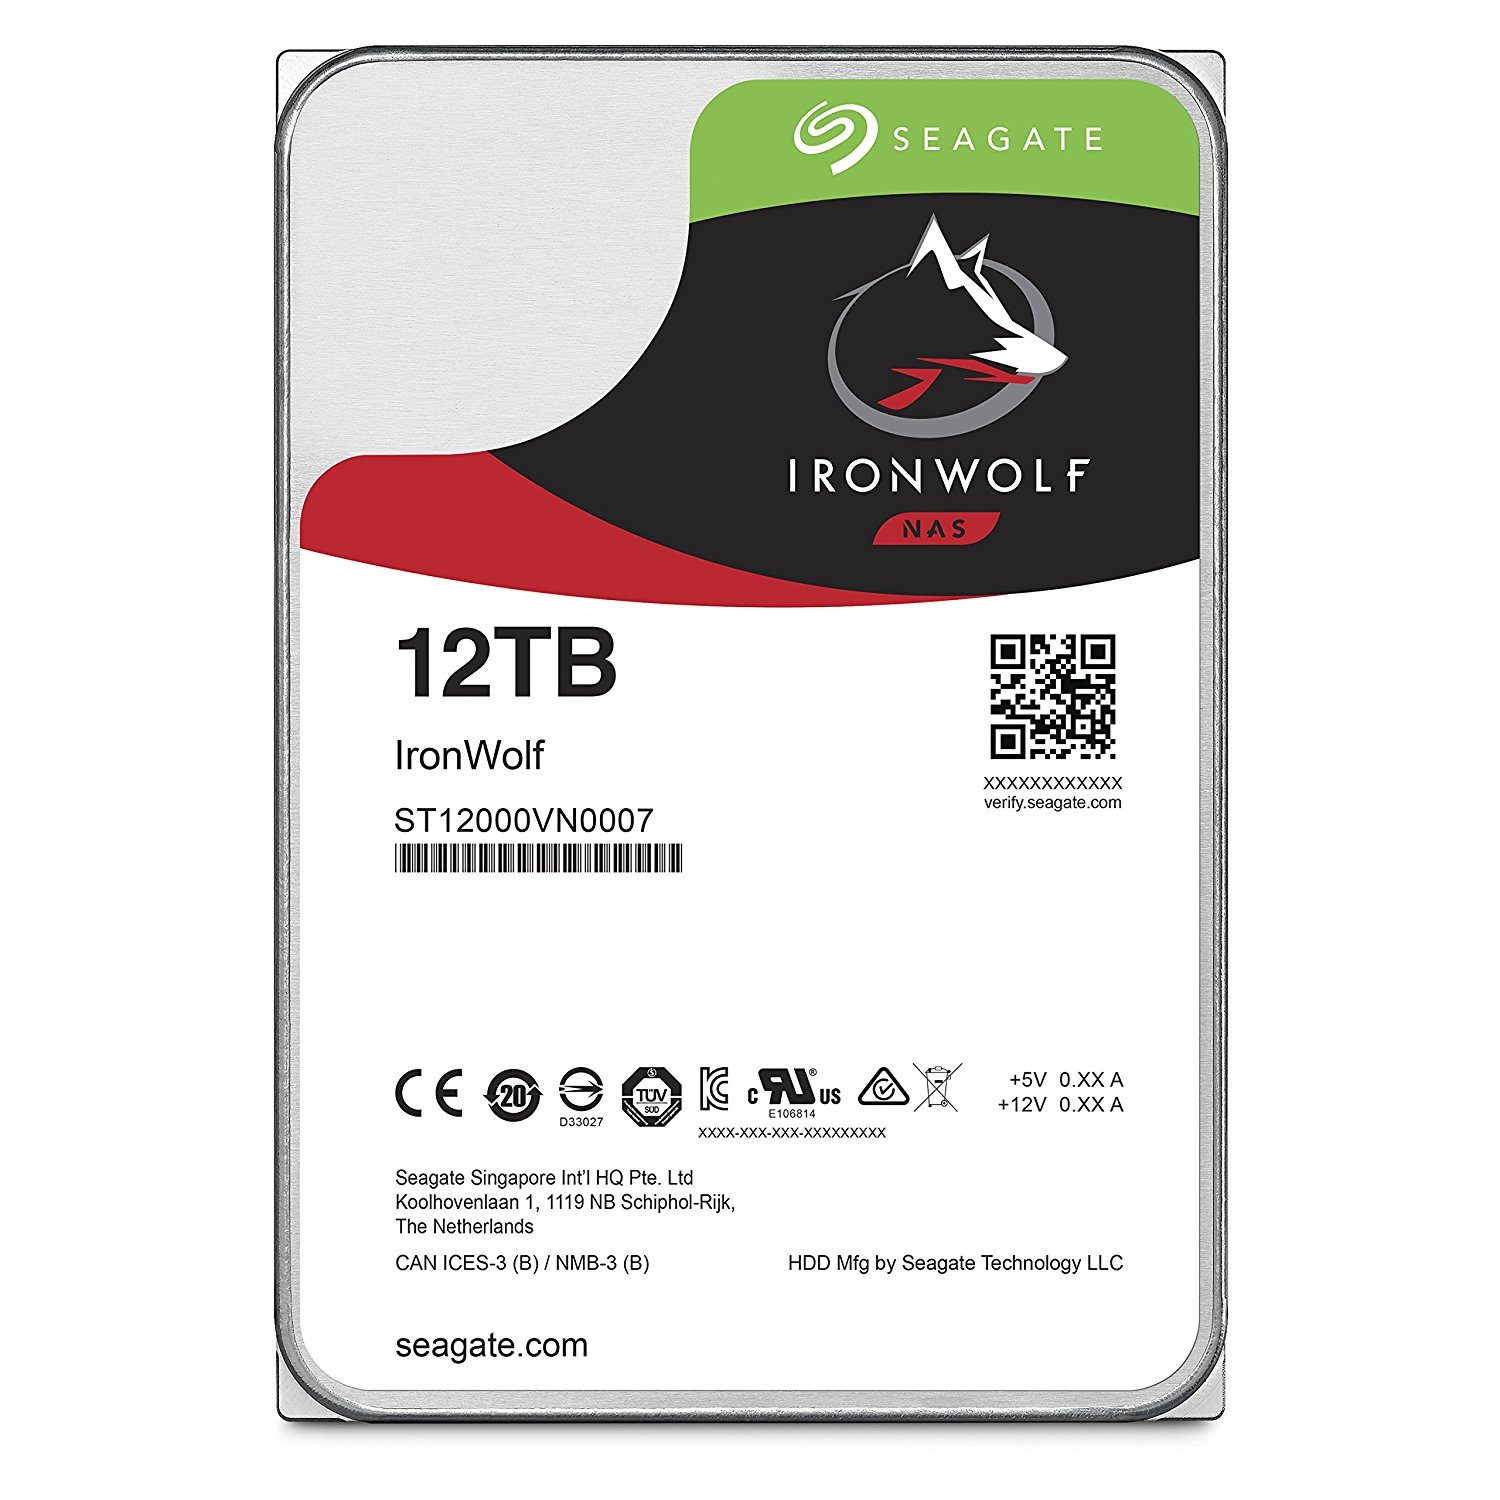 HDD Seagate IRONWOLF NAS 12TB/7200,Sata3,256MB Cache (ST12000VN0007).